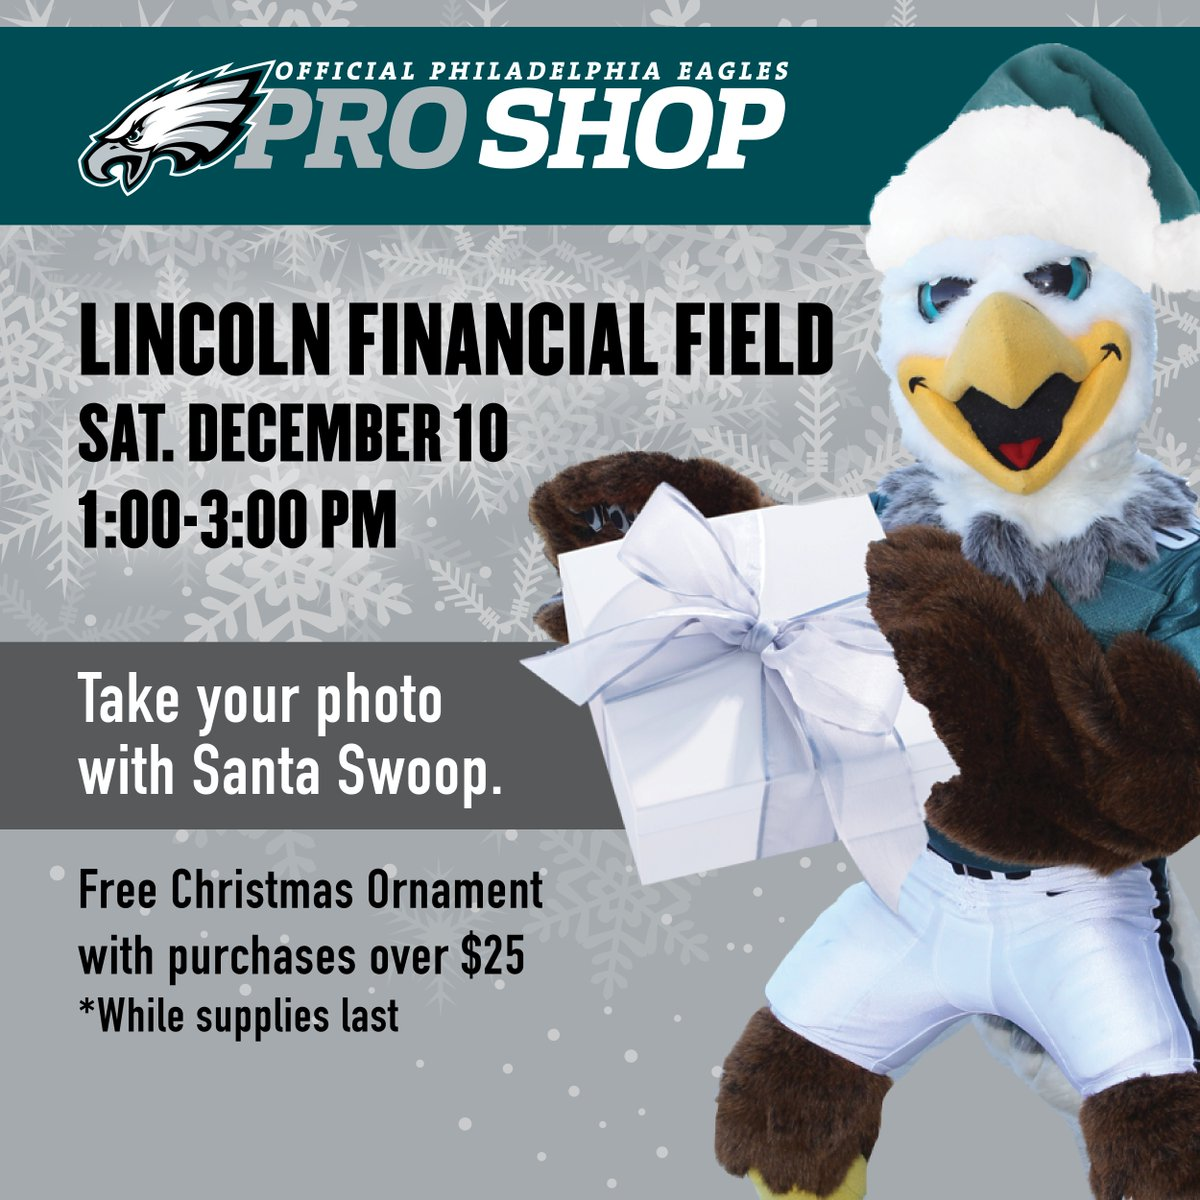 Eagles Pro Shop On Twitter The Holidays Are Here Join Santa Swoop